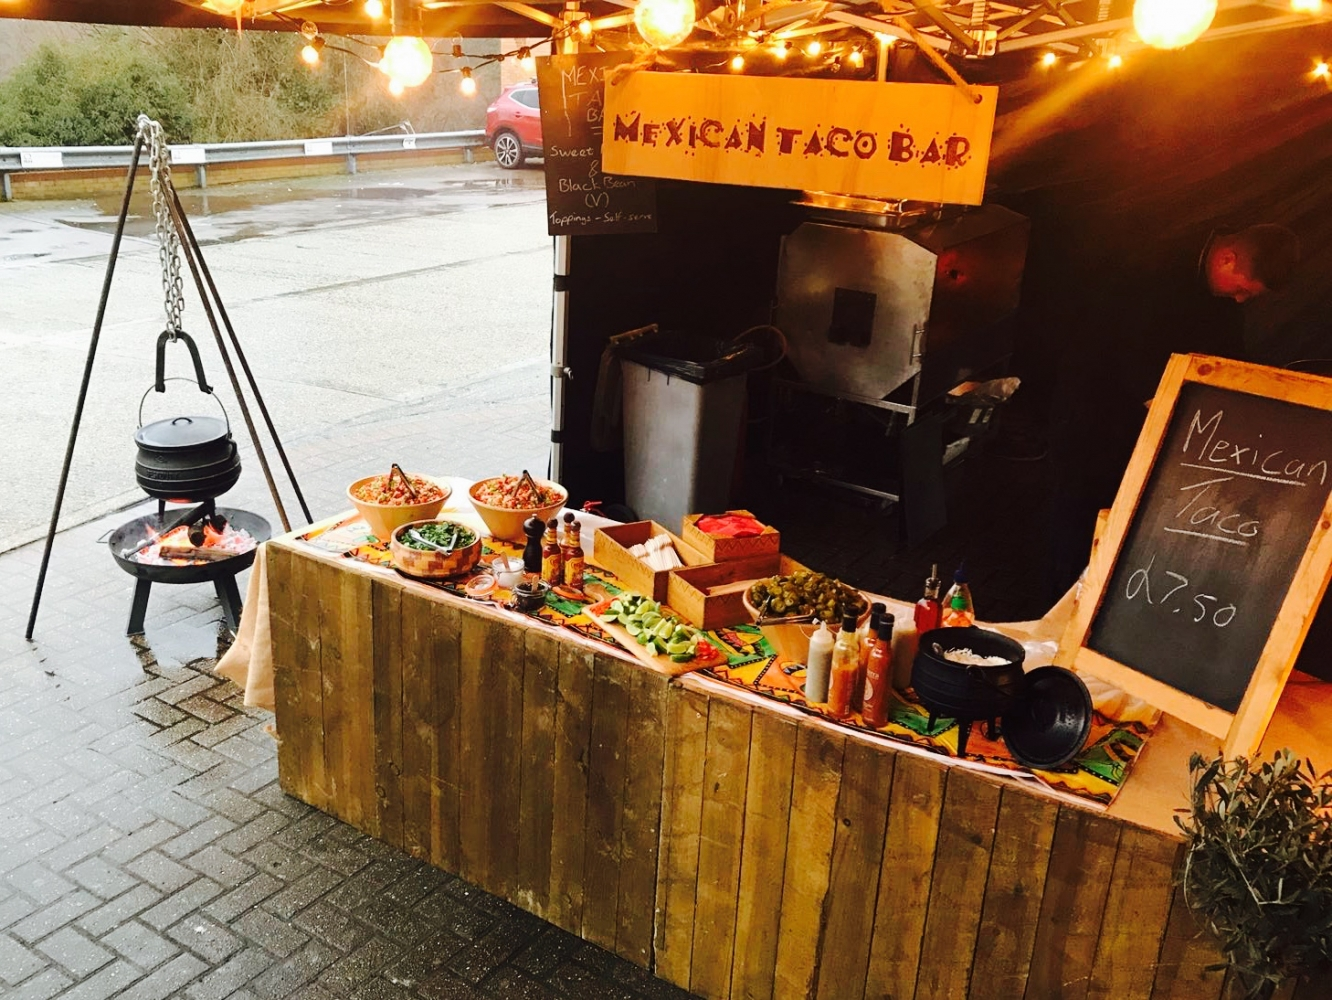 The rising popularity of street food catering